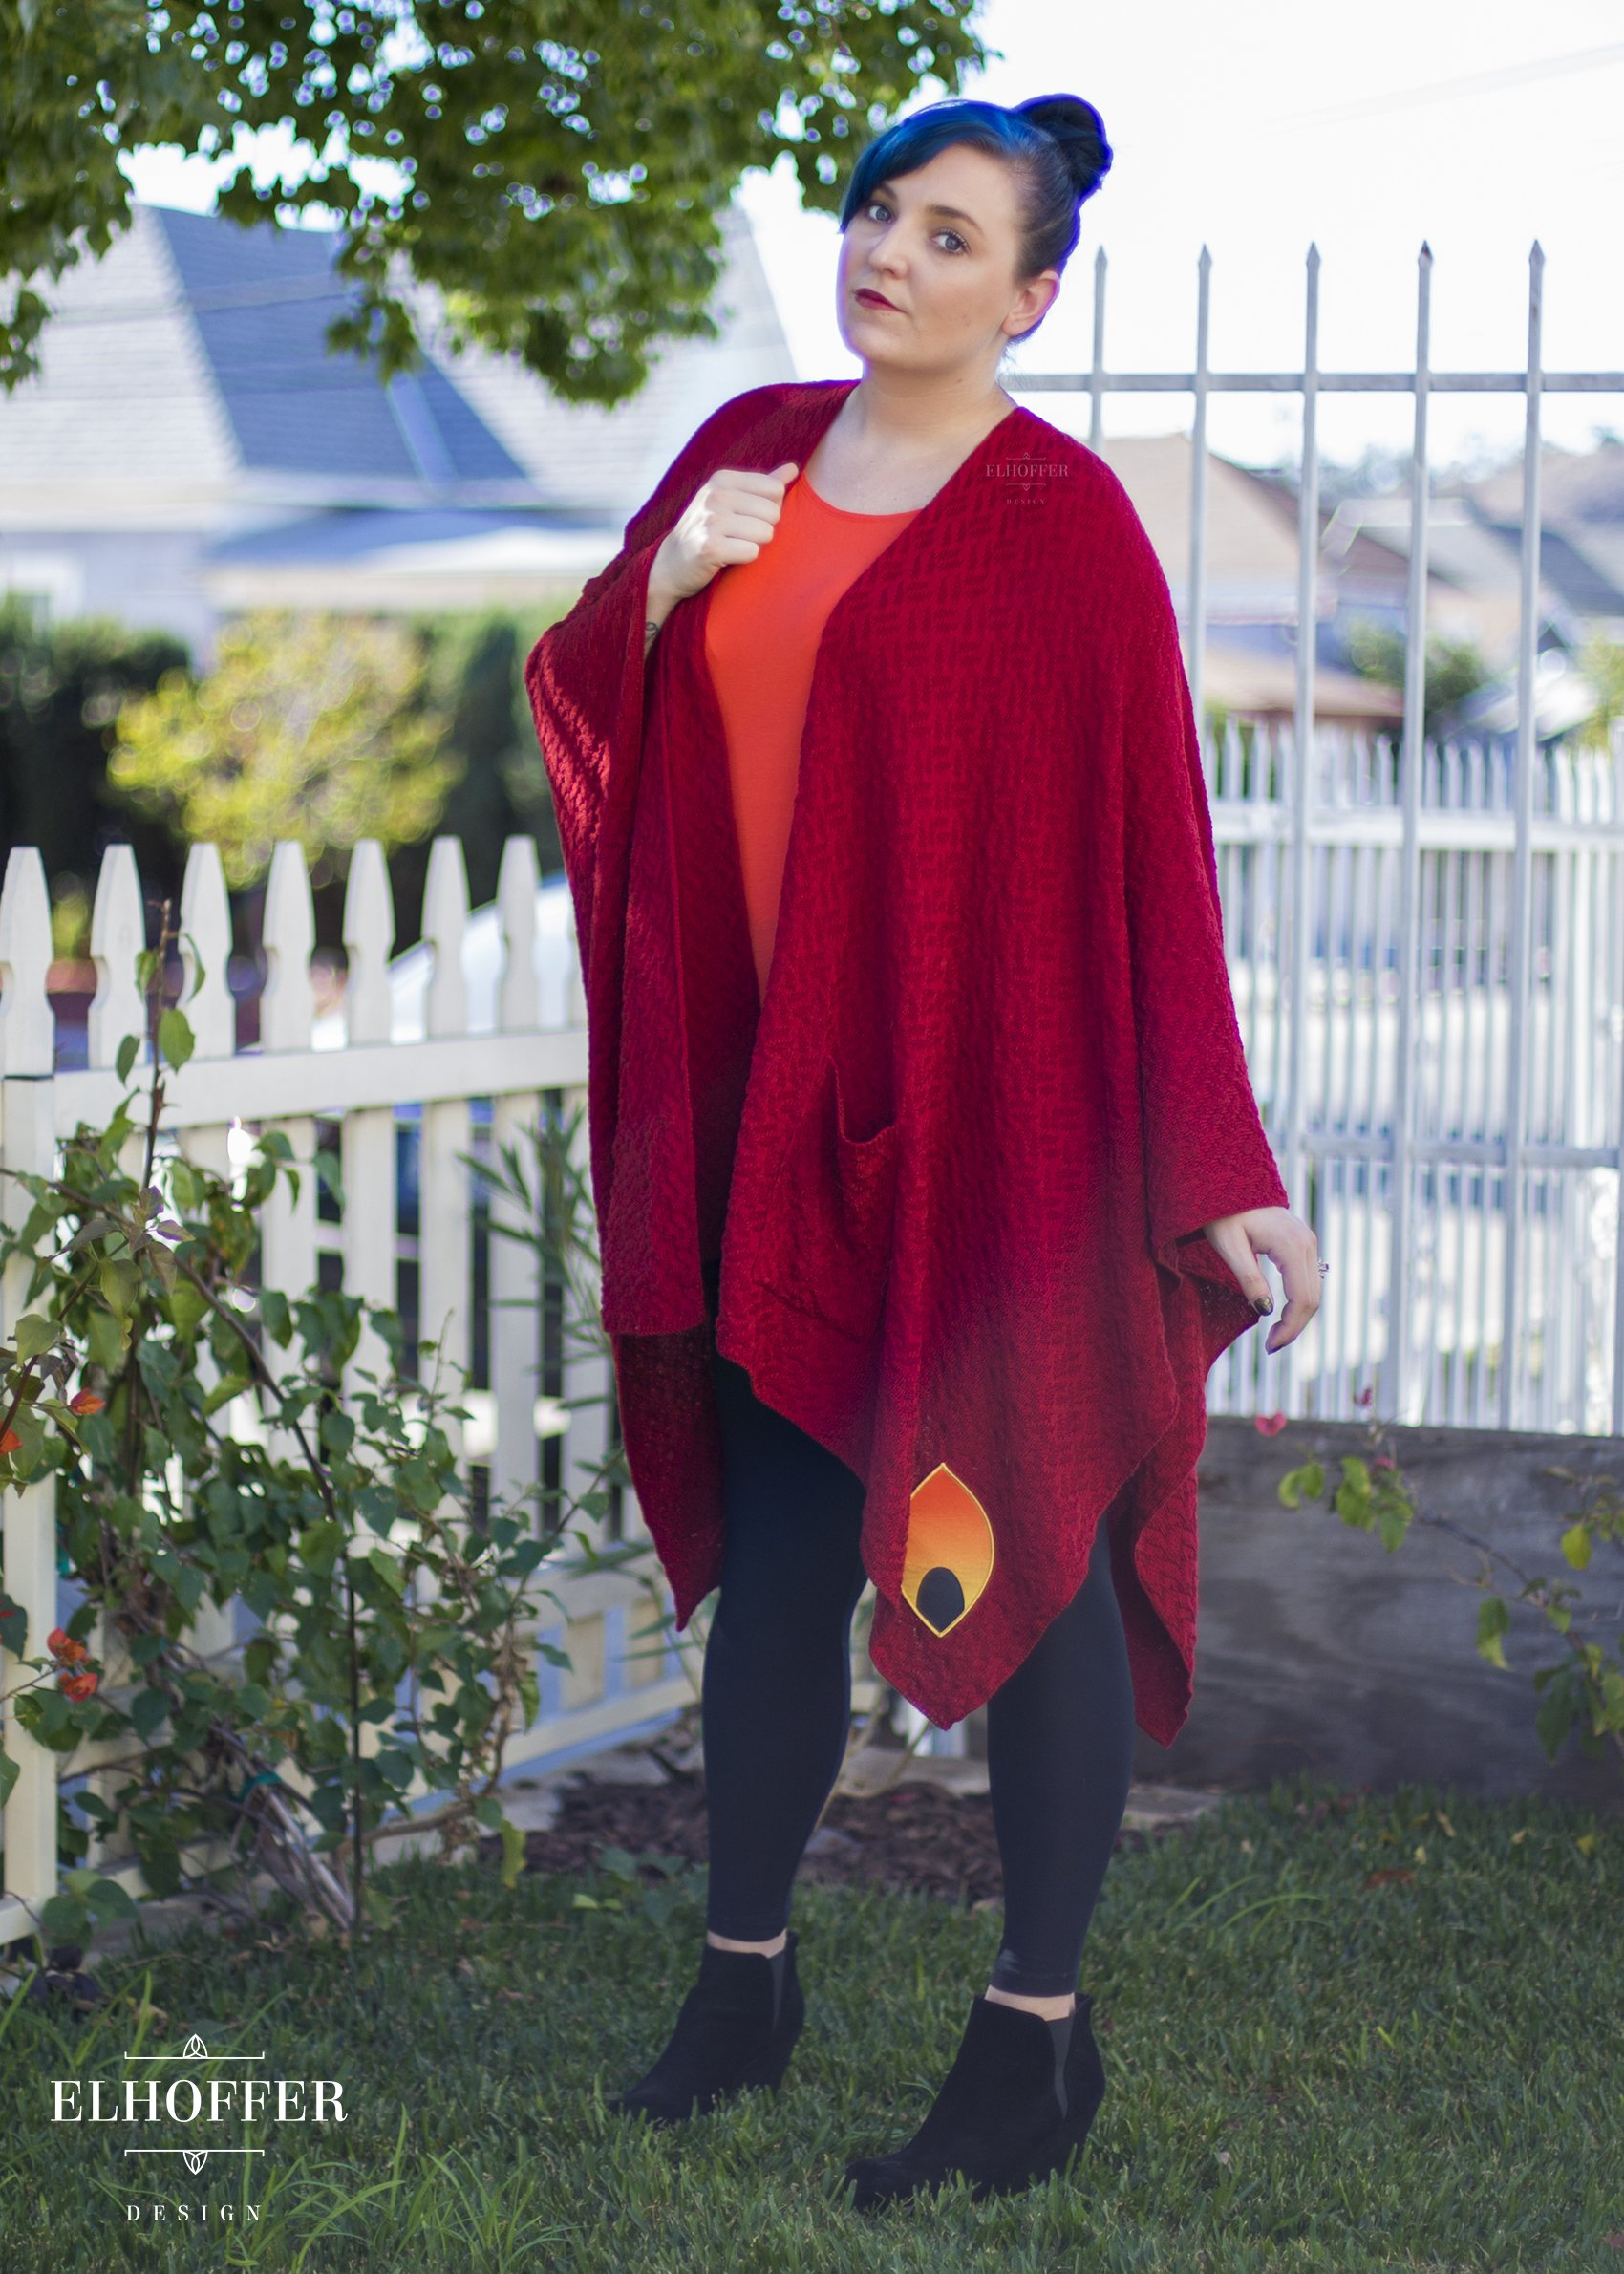 Star Wars Queen Amidala Inspired Galactic Queen Cape by Elhoffer Design